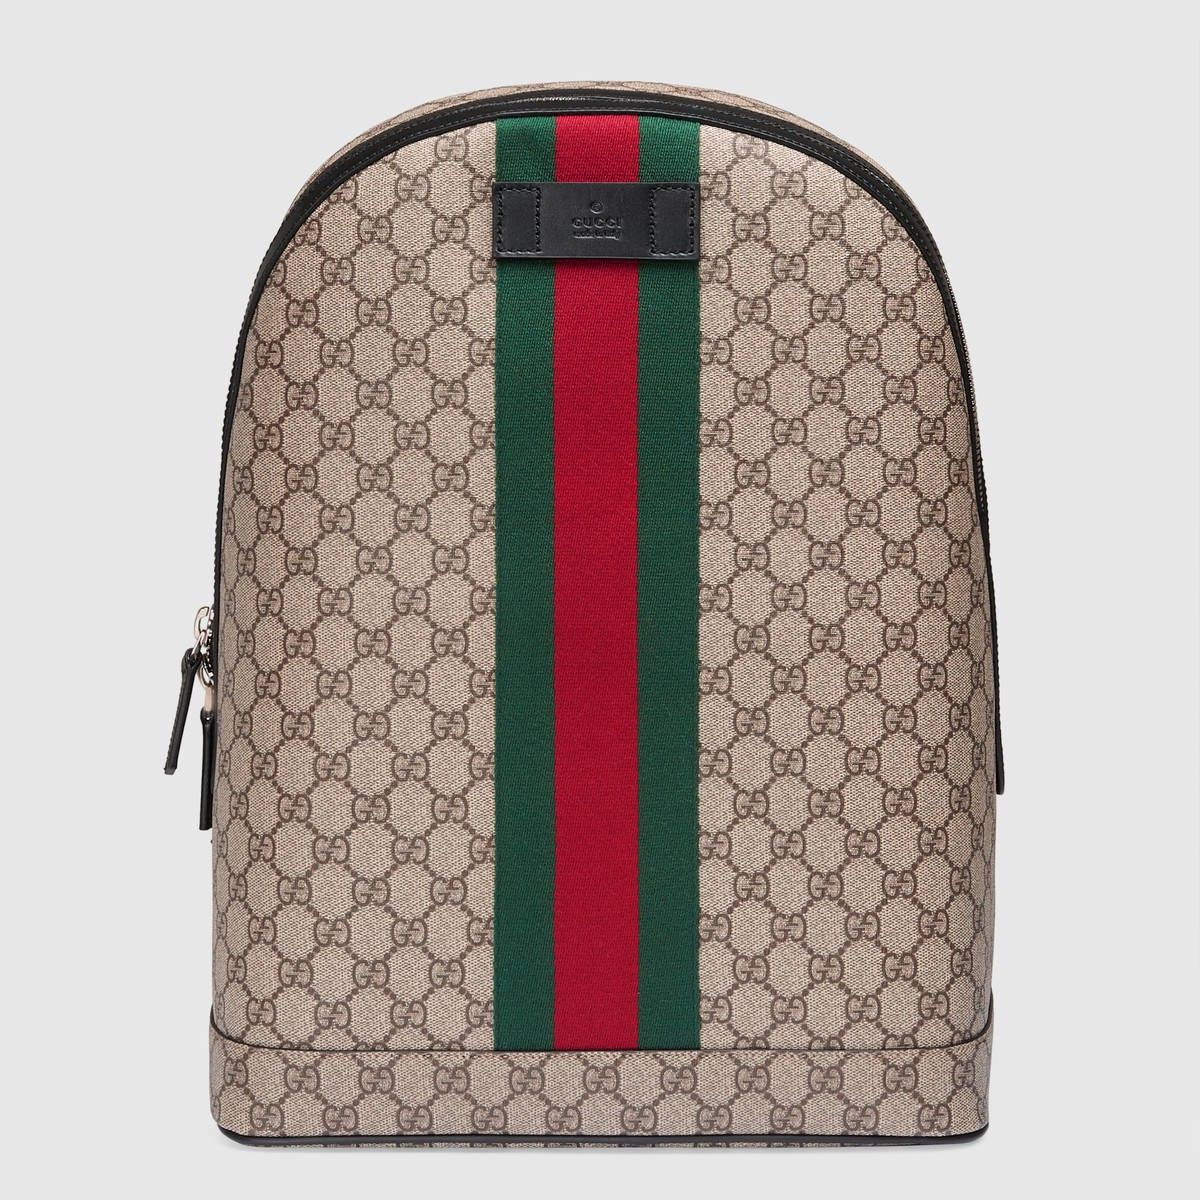 8de4d9f23a GUCCI Gg Supreme Backpack With Web - Gg Supreme. #gucci #bags #leather  #lining #canvas #nylon #backpacks #